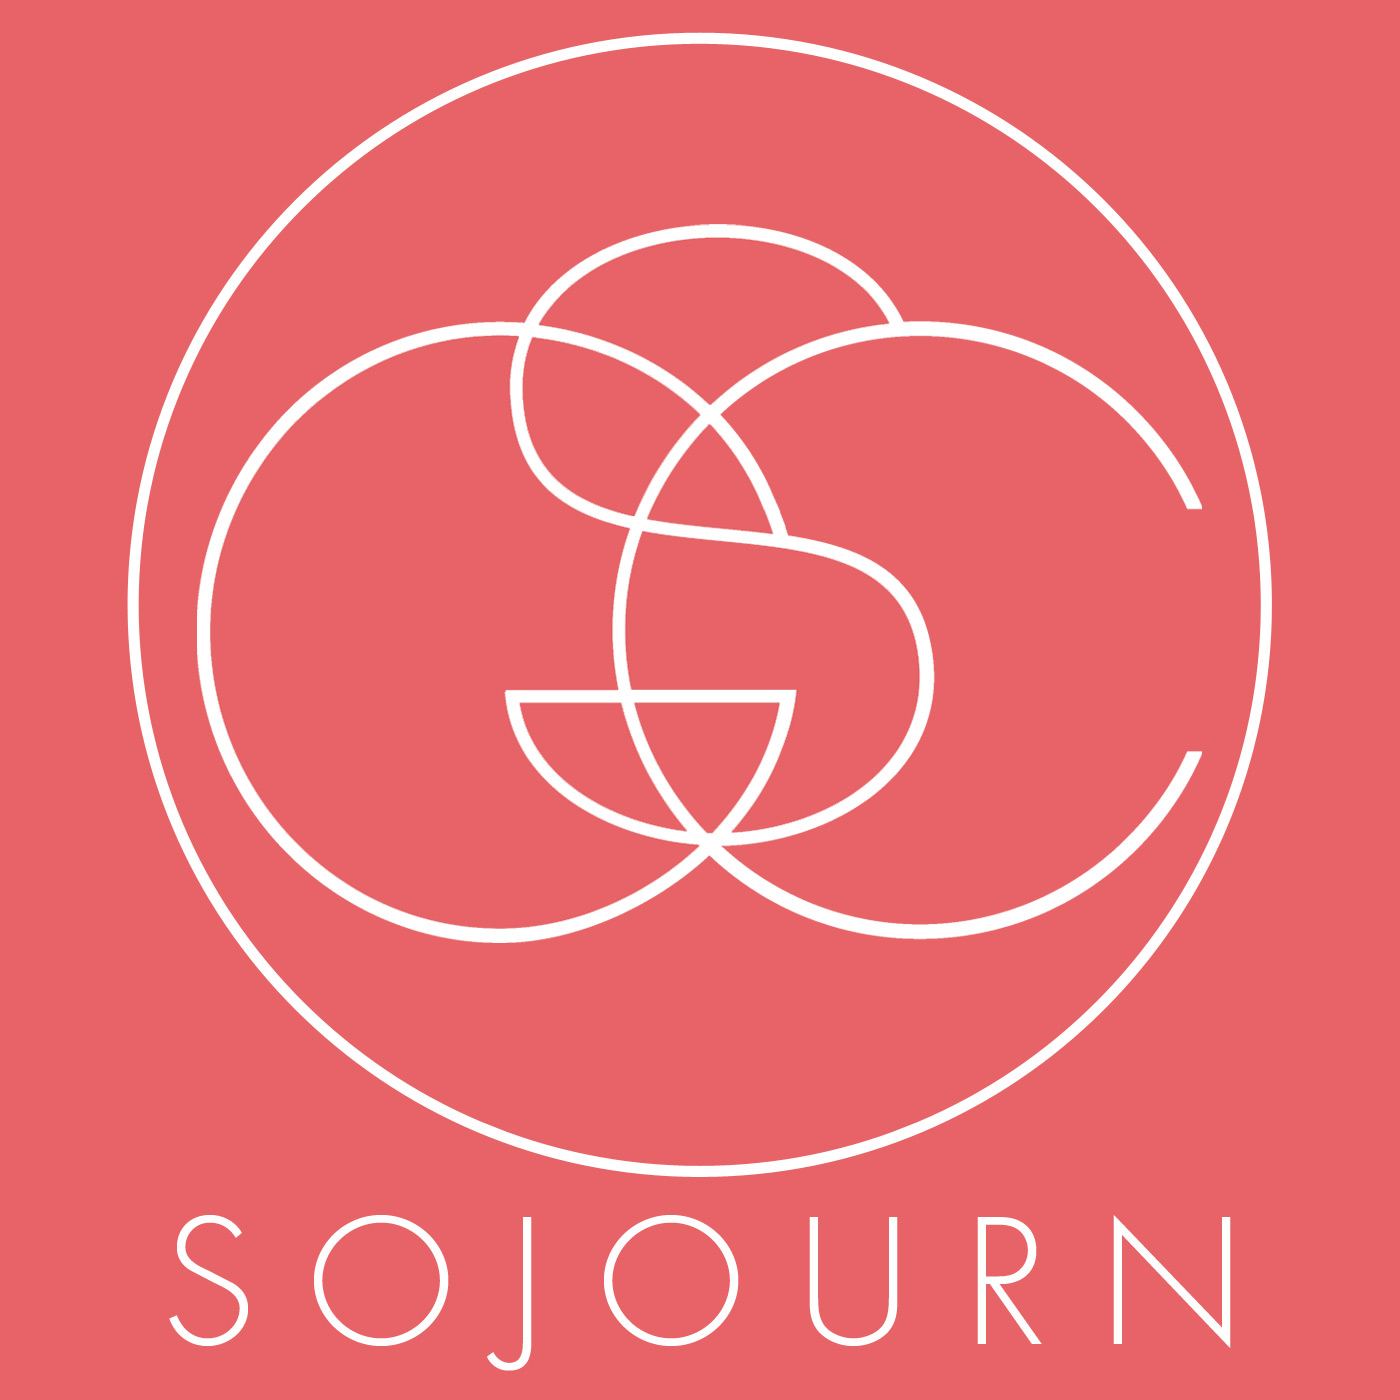 Sojourn Grace Collective - Sojourn Grace Collective